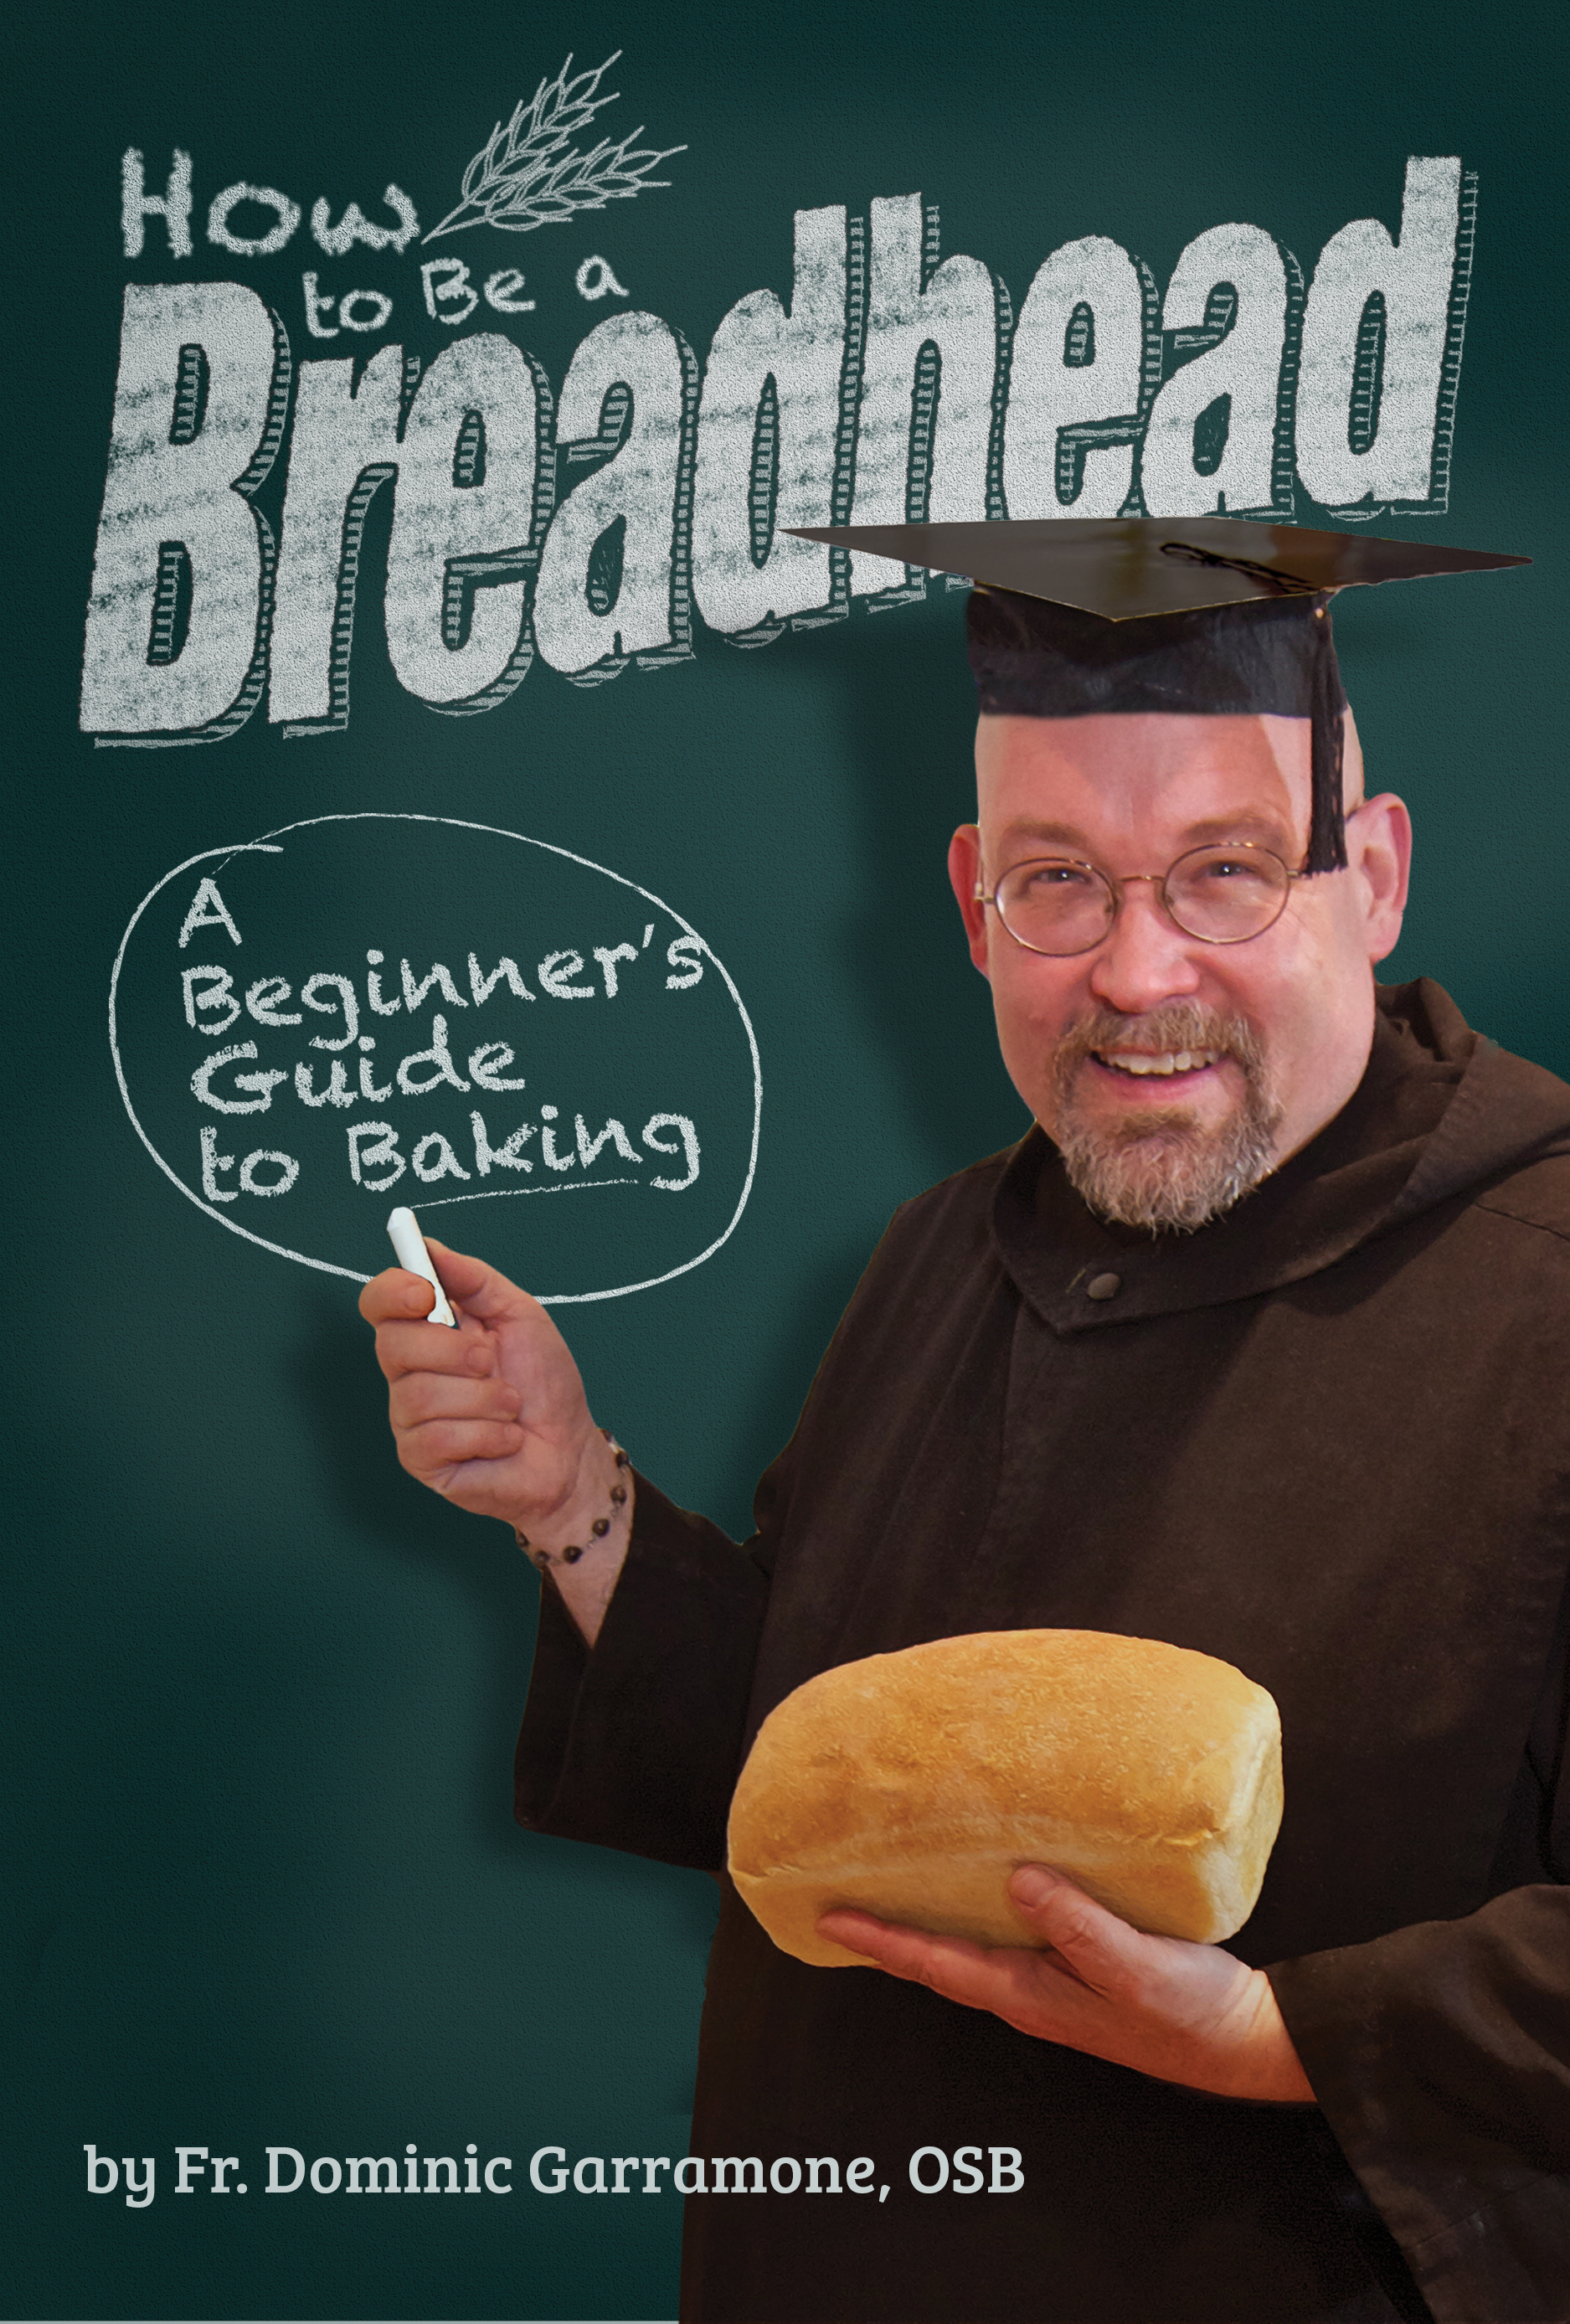 http://www.momsplans.com/wp-content/uploads/2012/10/Breadhead_cover_high.jpg